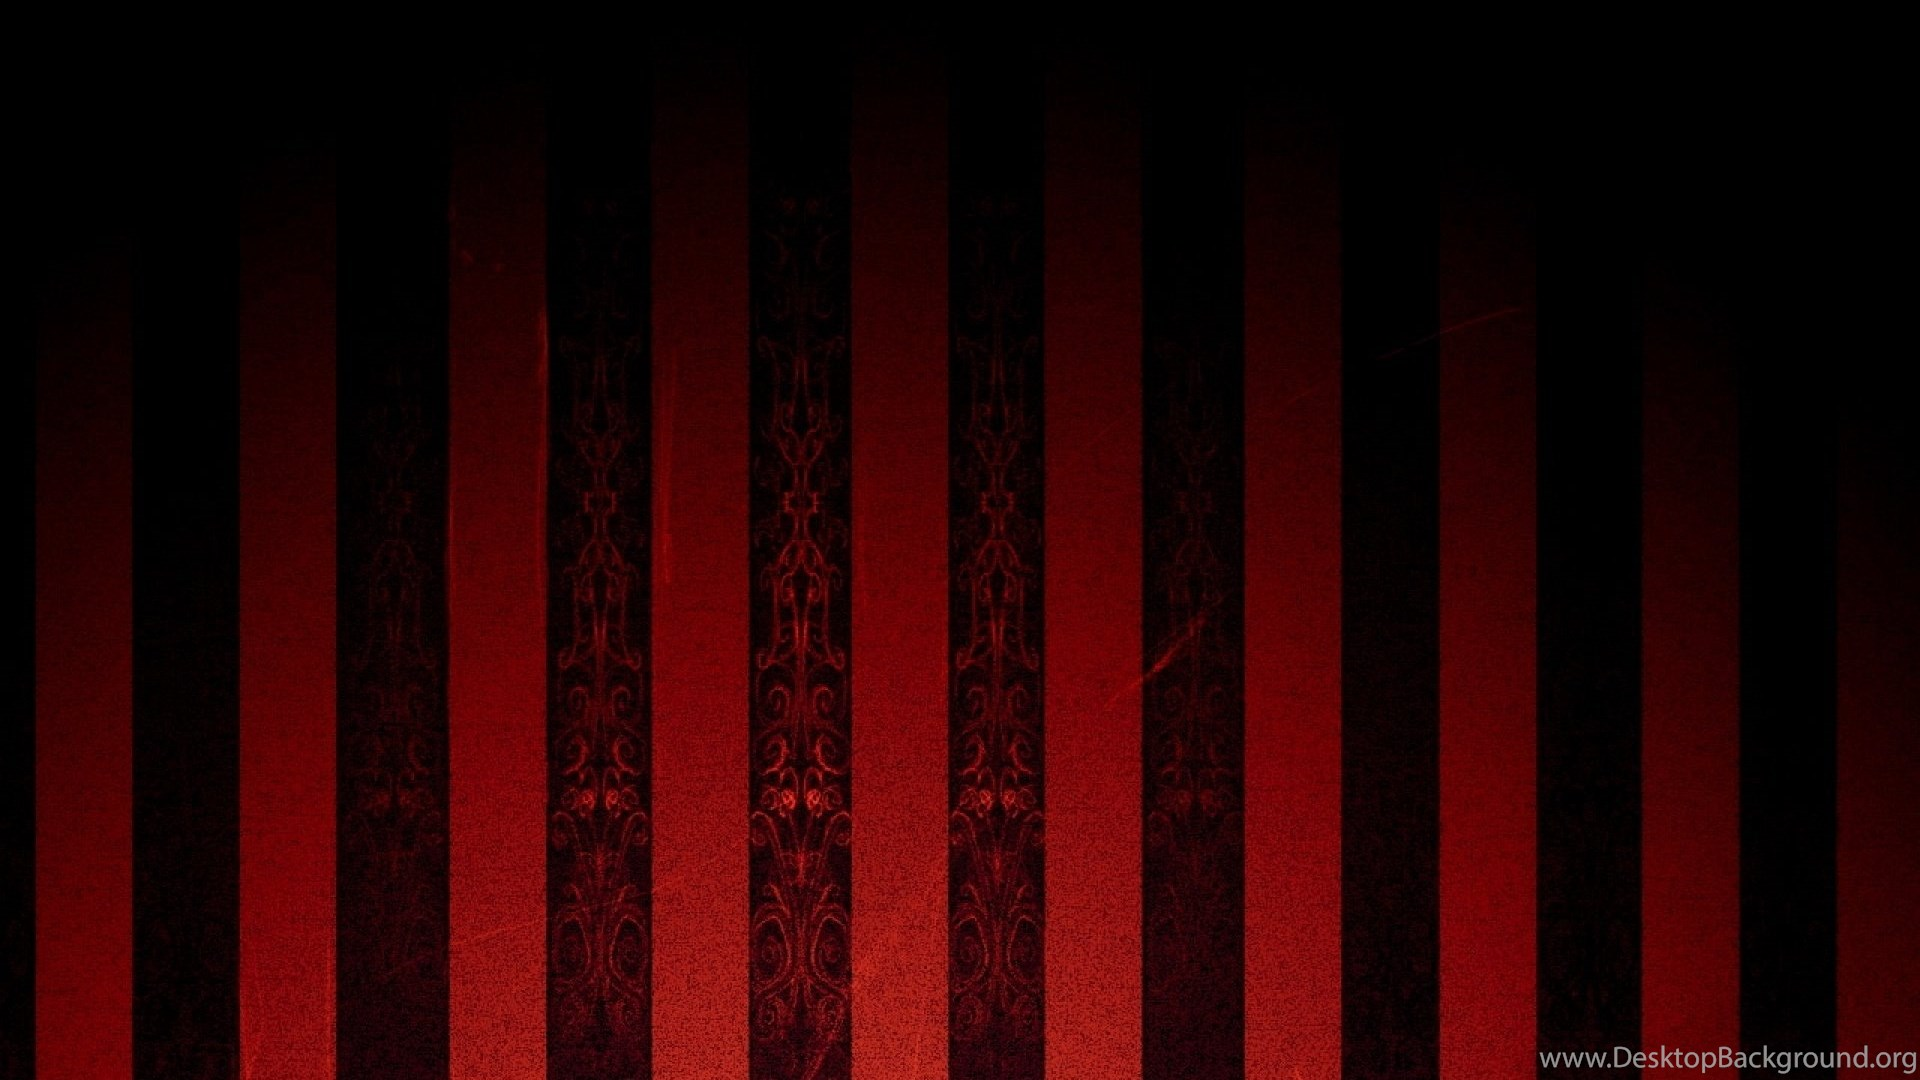 694130 high resolution black and red stripe wallpapers hd 5 full